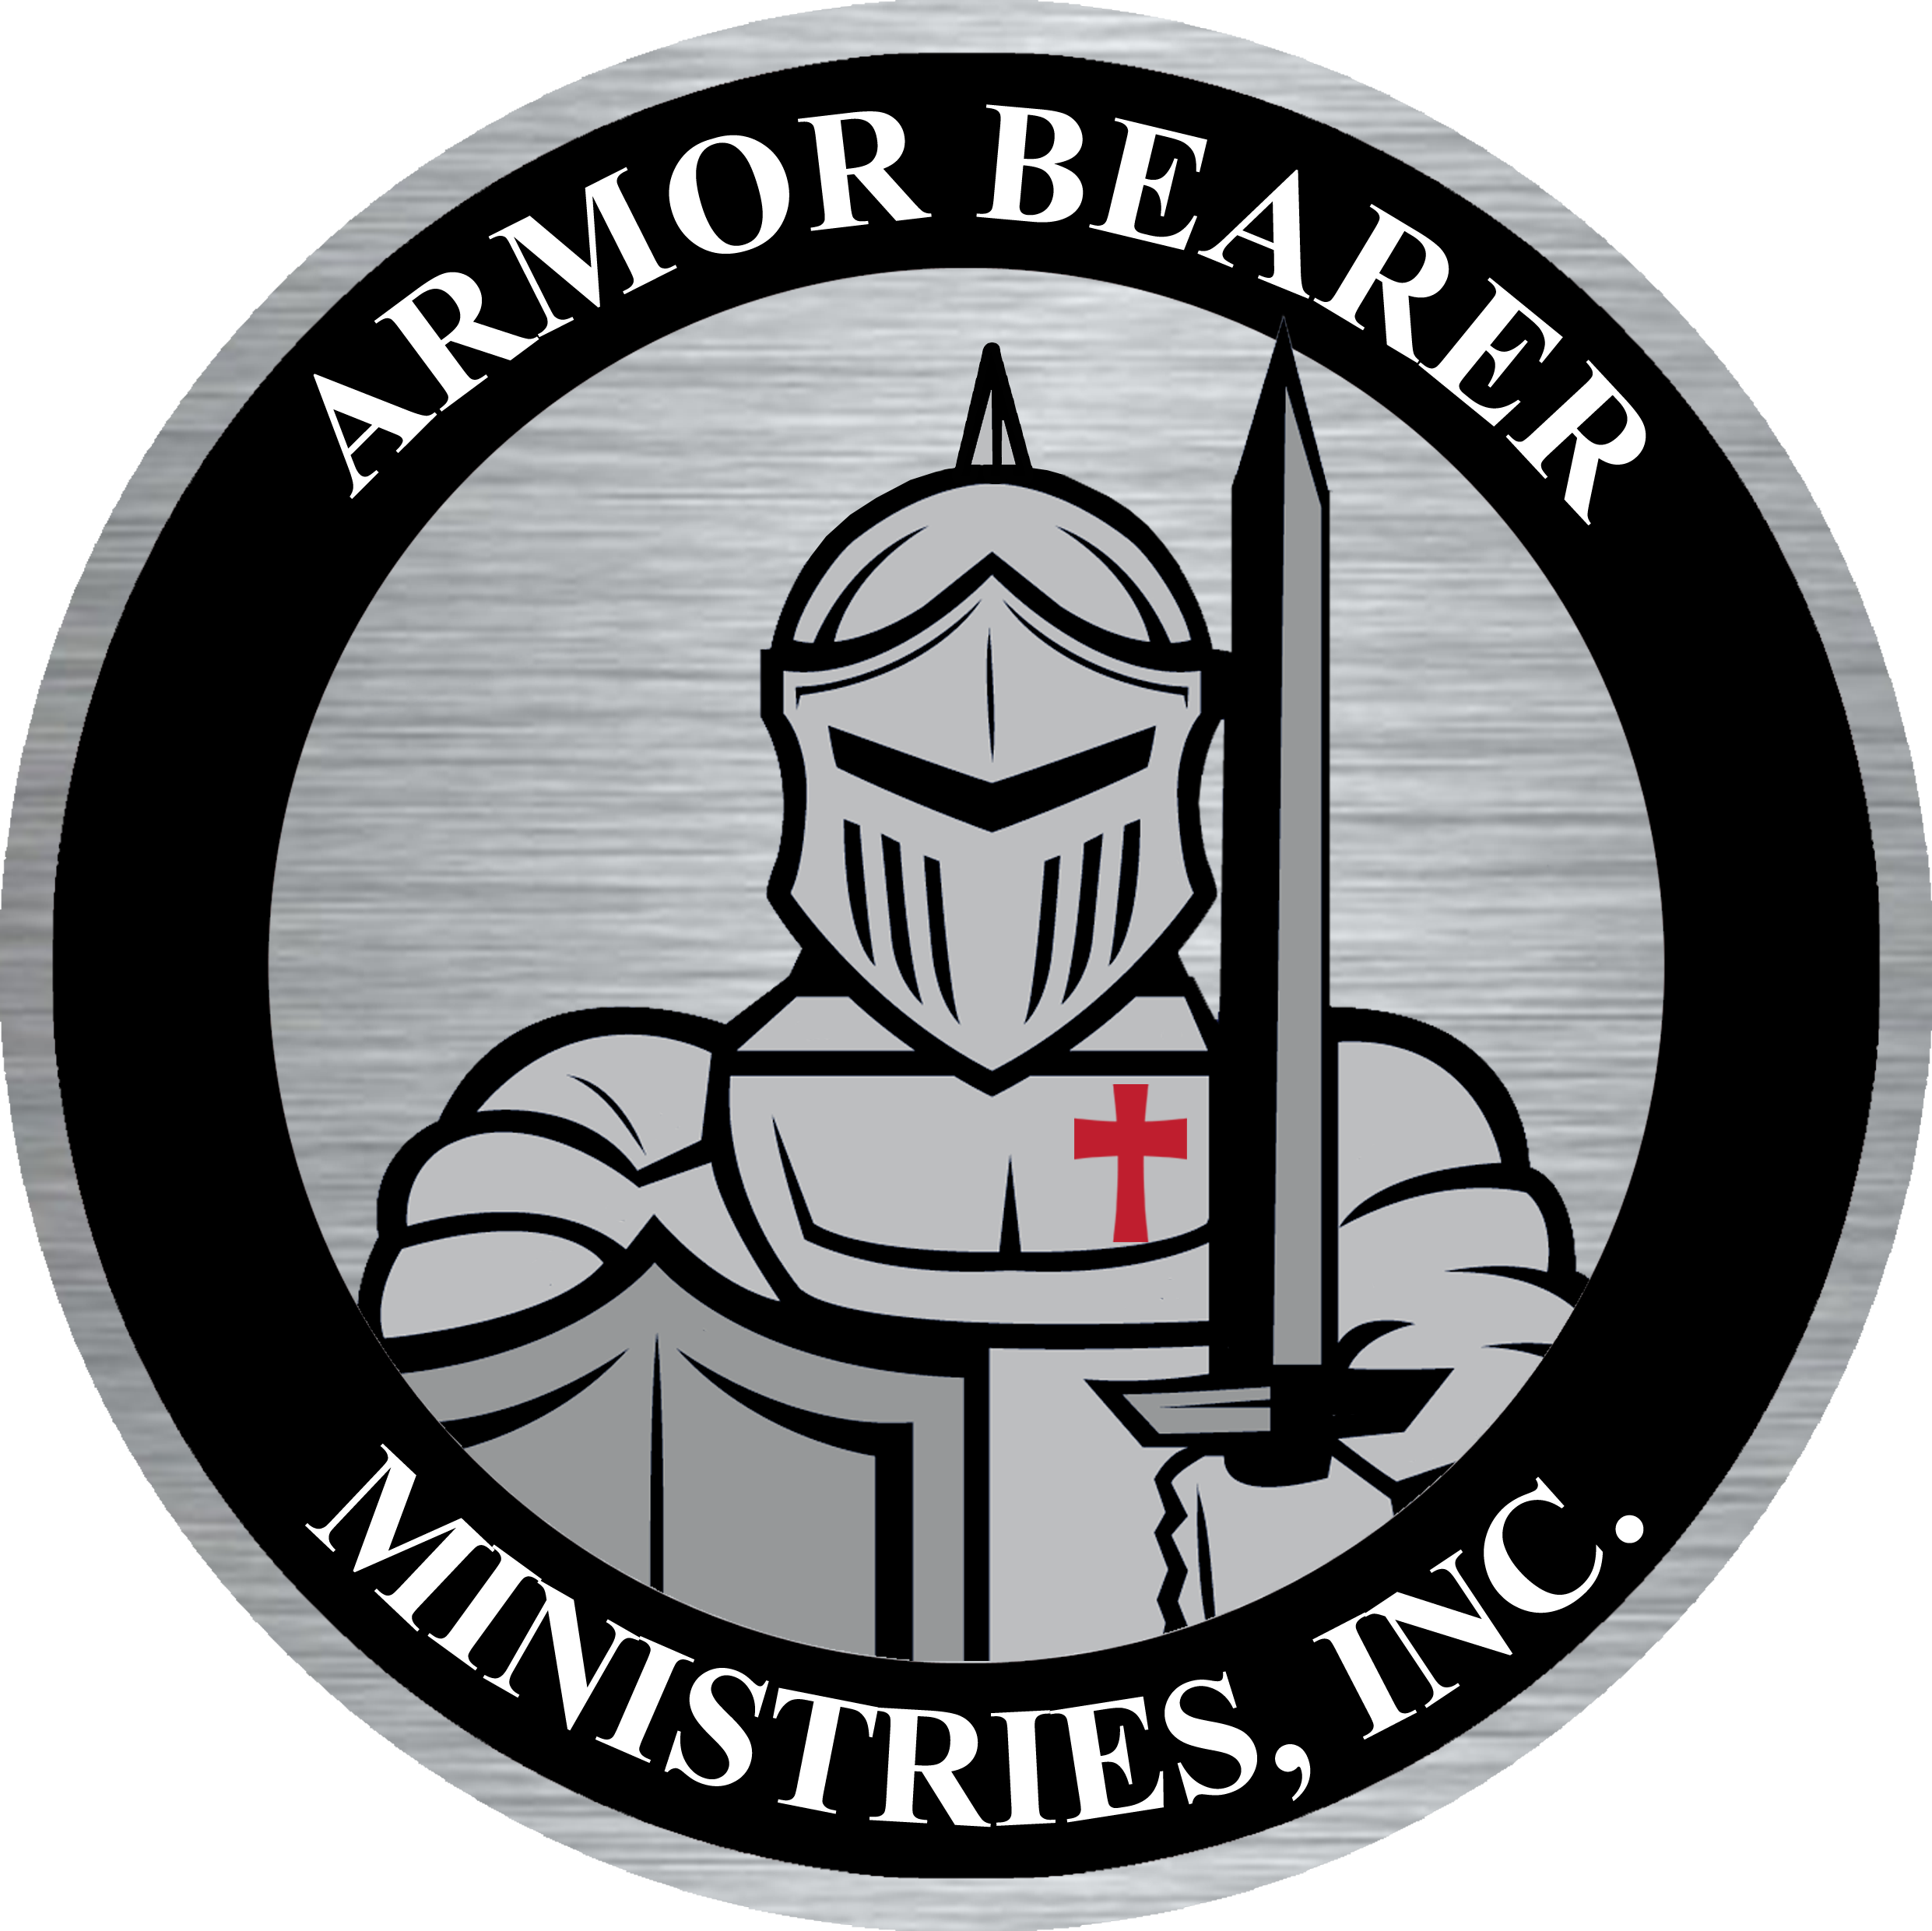 Armor bearer ministries is. Pastor clipart family get together